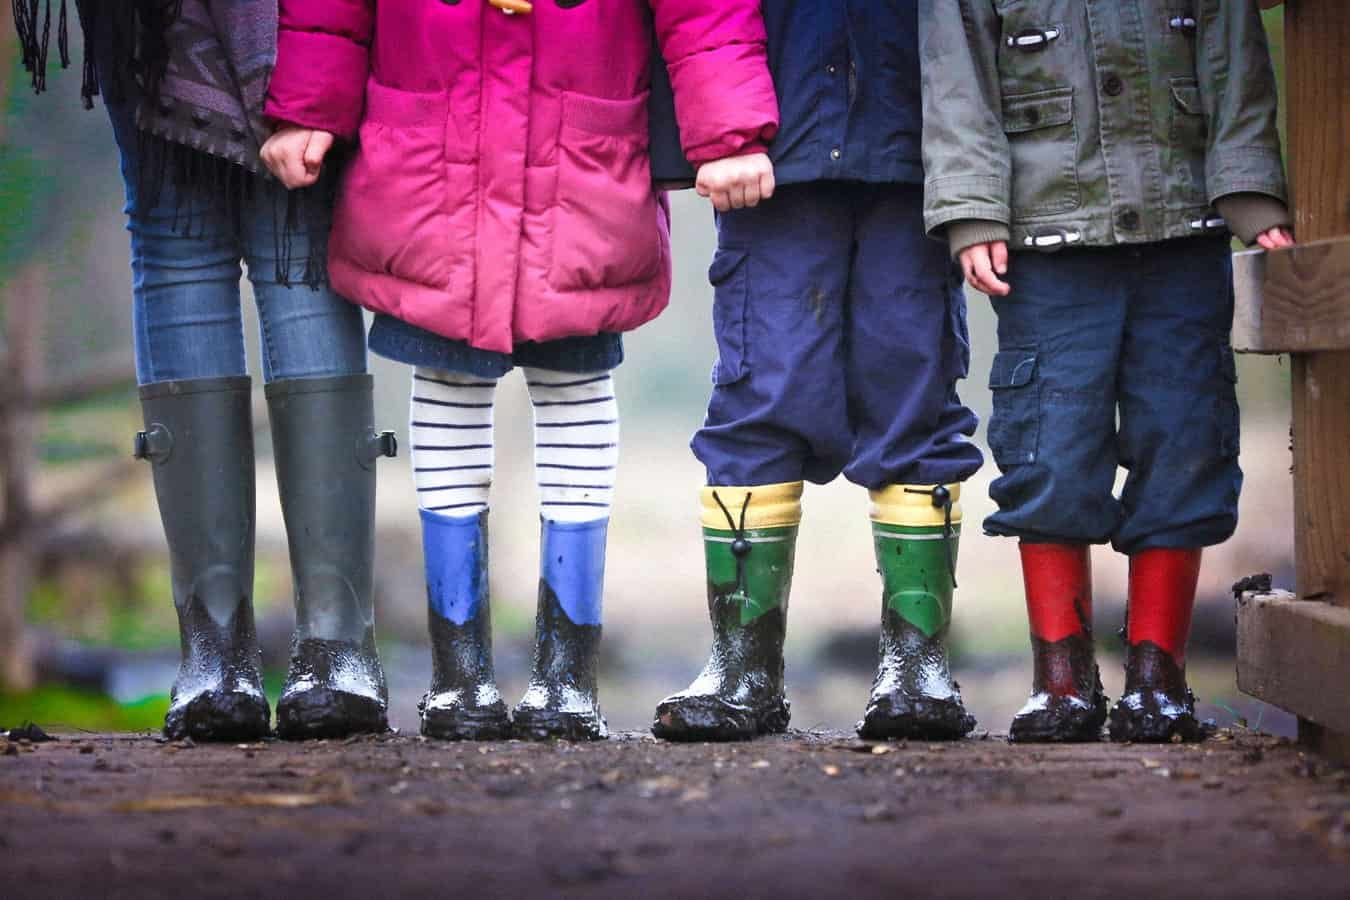 Children standing together in boots